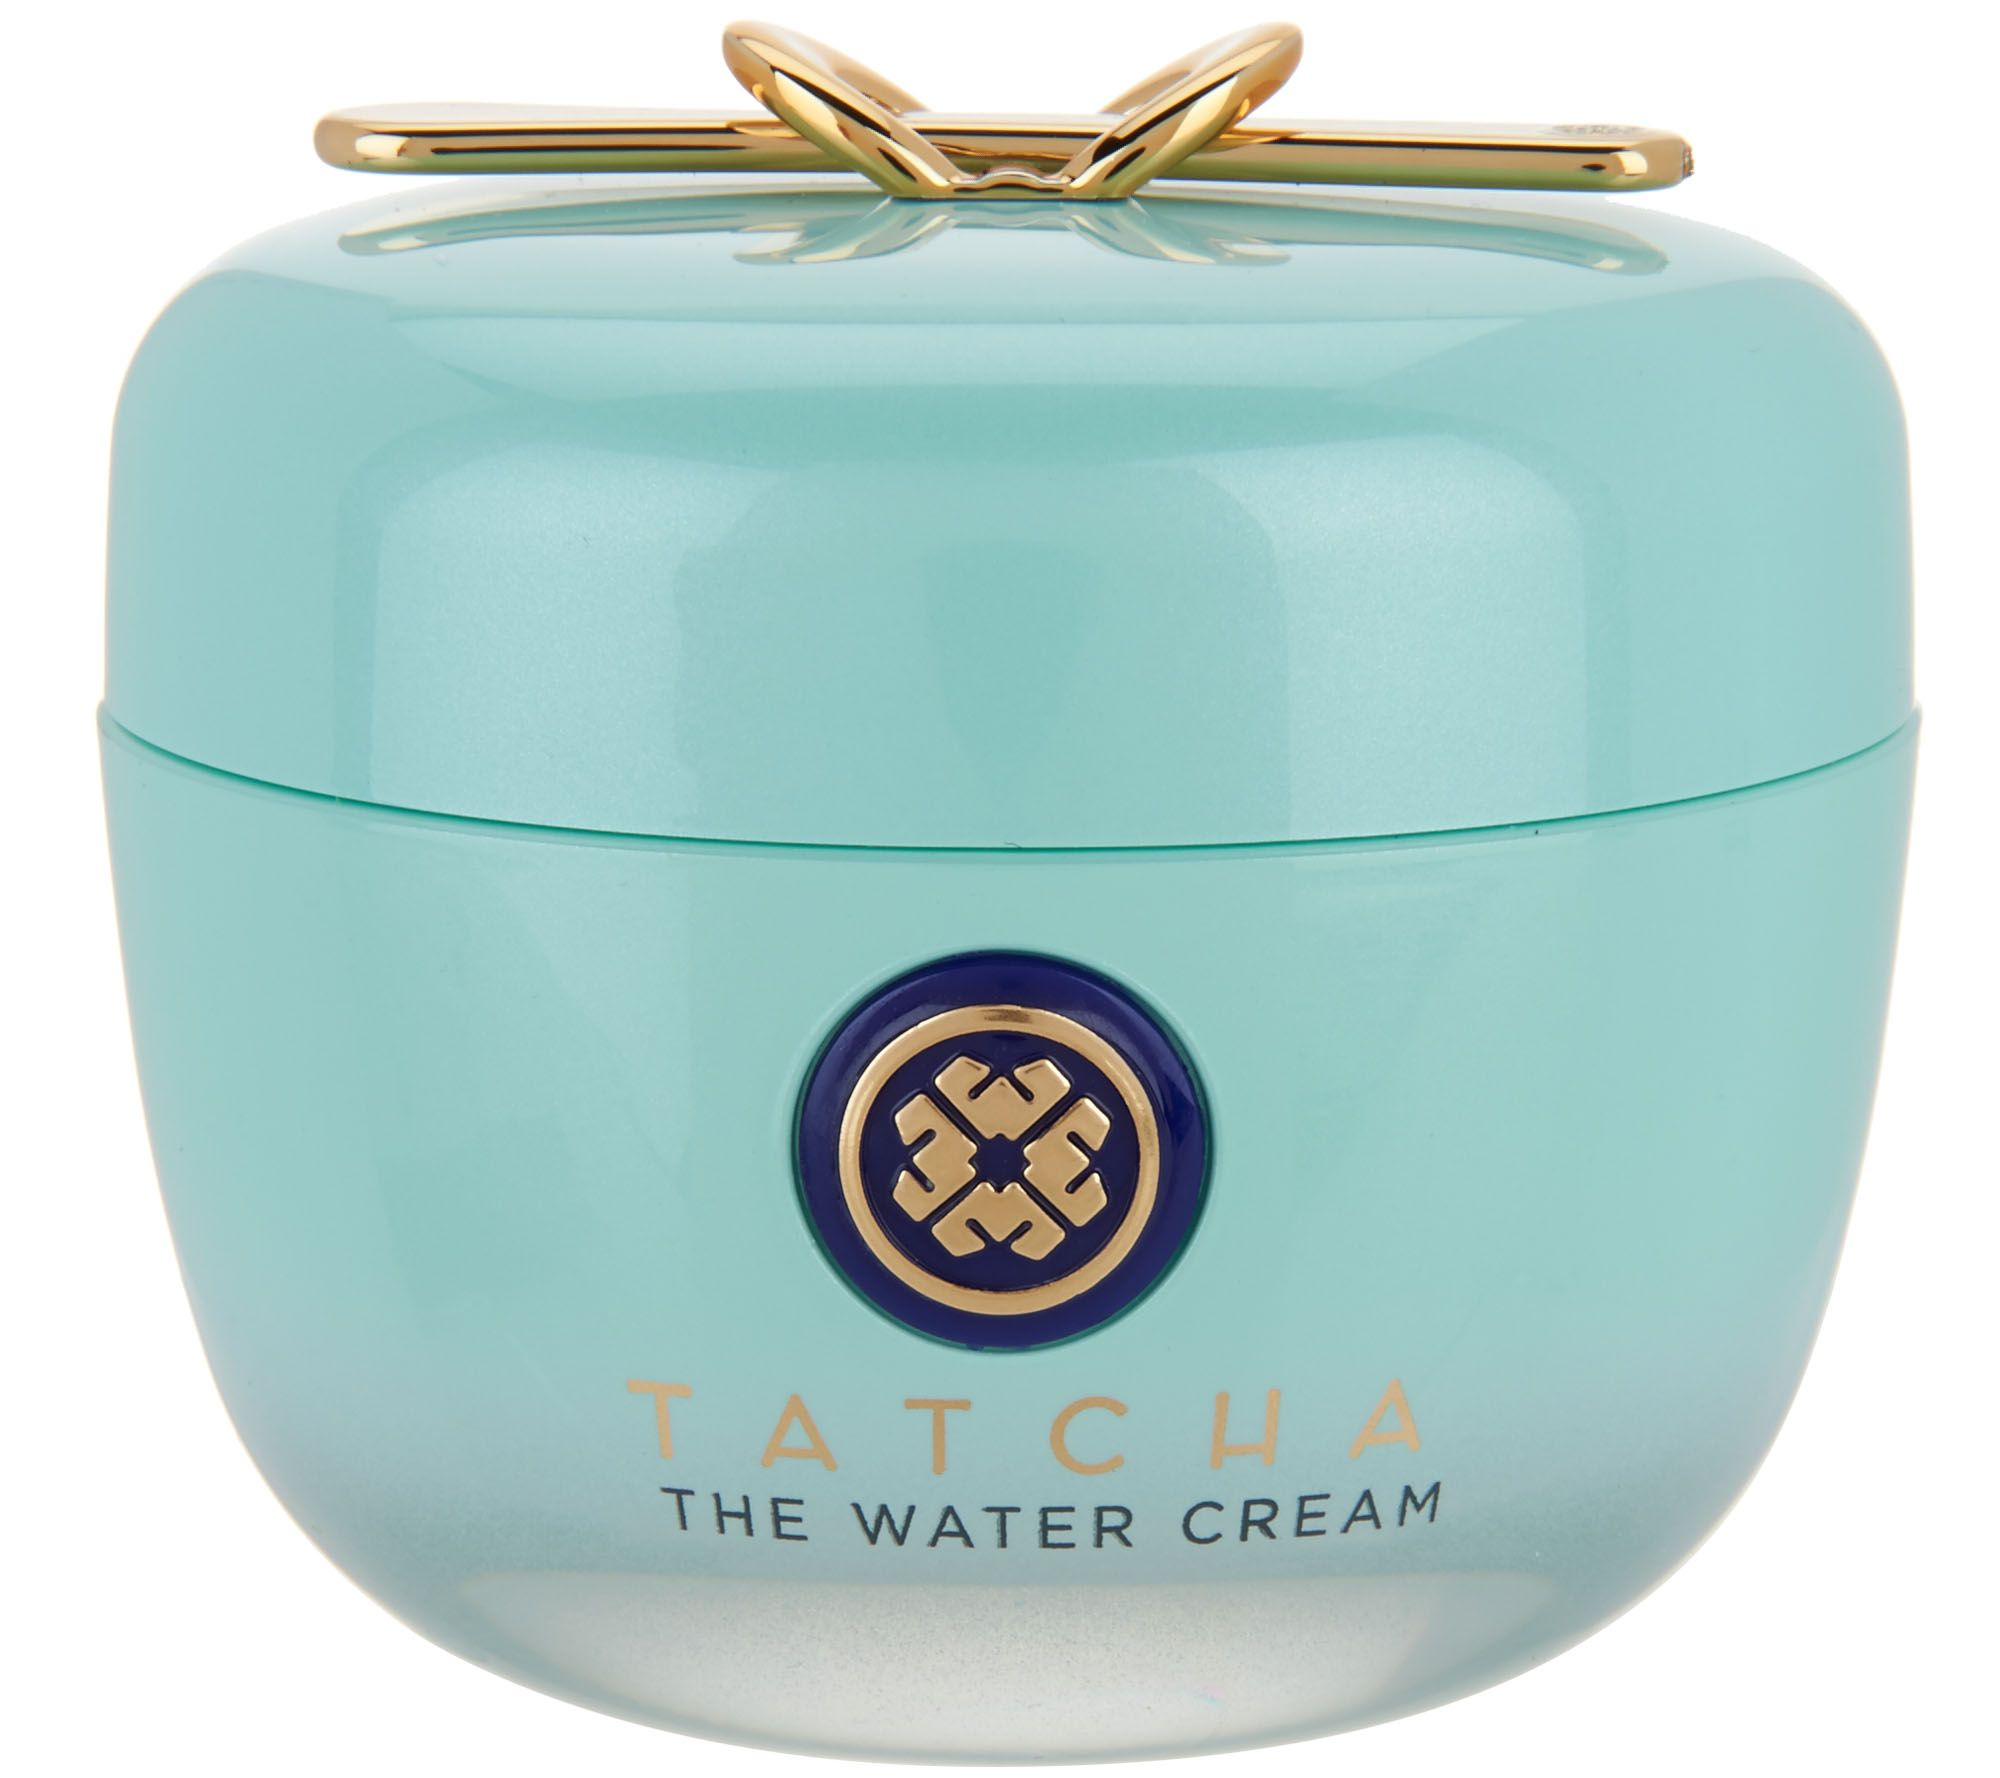 TATCHA The Water Cream Moisturizer 1.7-oz - QVC.com